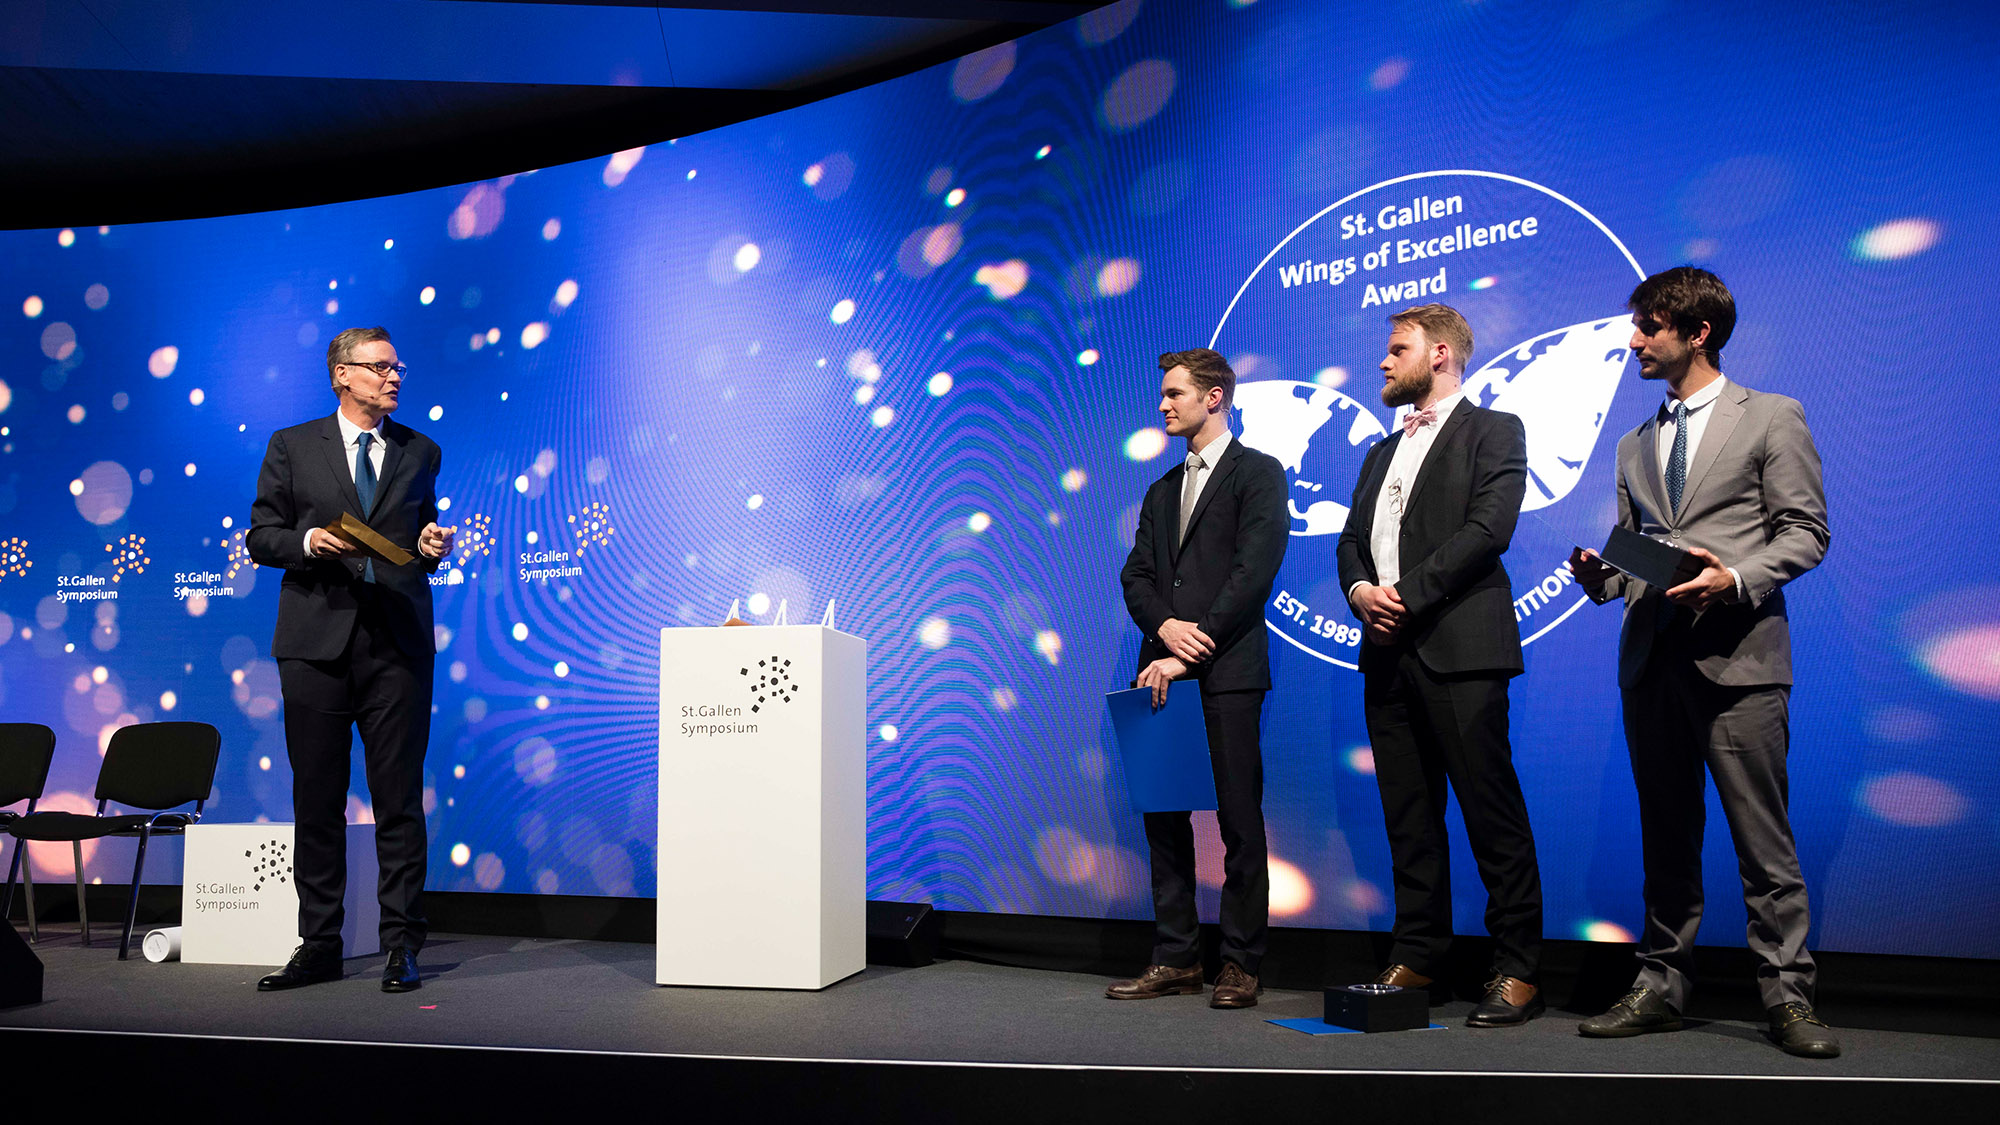 St.Gallen Wings of Excellence Award 2018